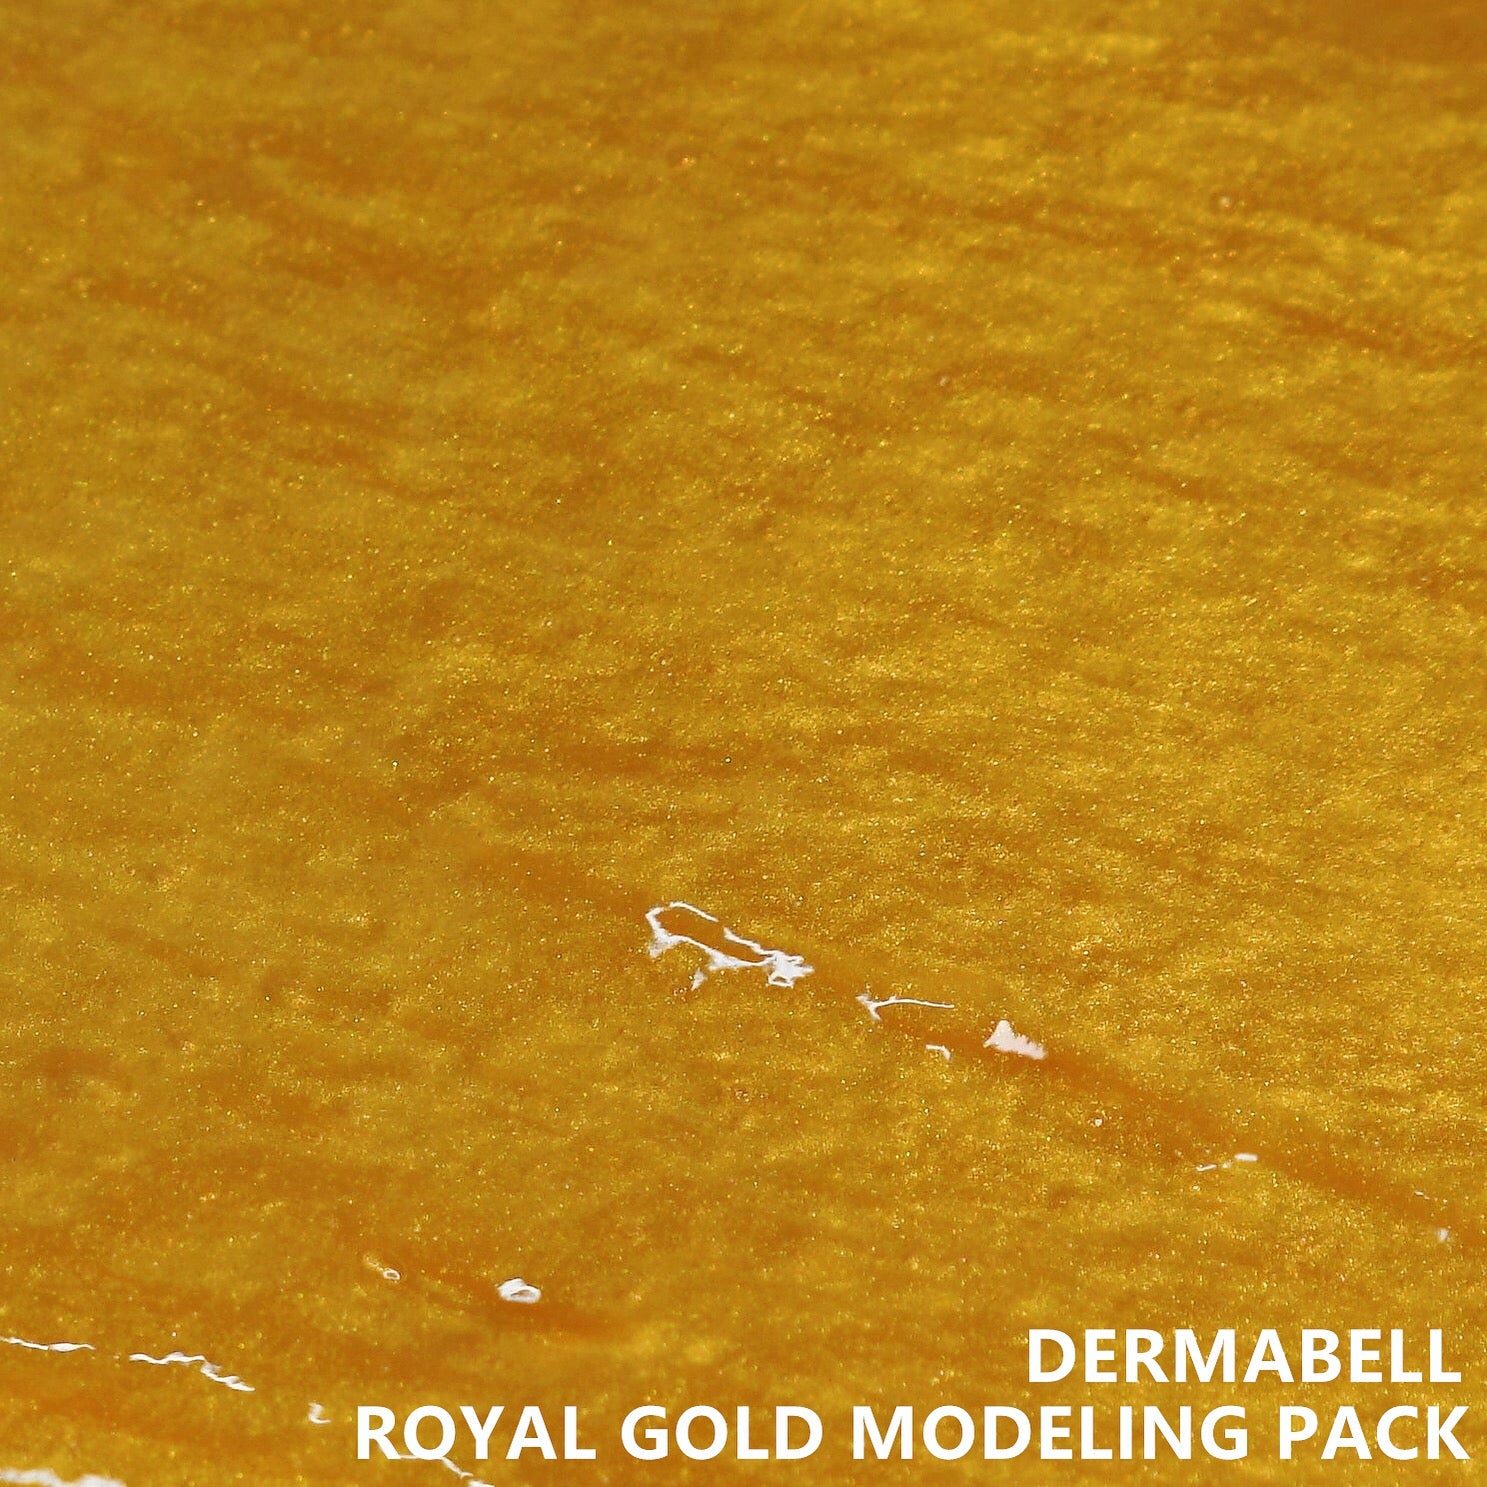 Royal Gold Modeling Gel Mask Modeling Gel Masks by DERMABELL PRO. Kbeauty. Cosmeceutical.